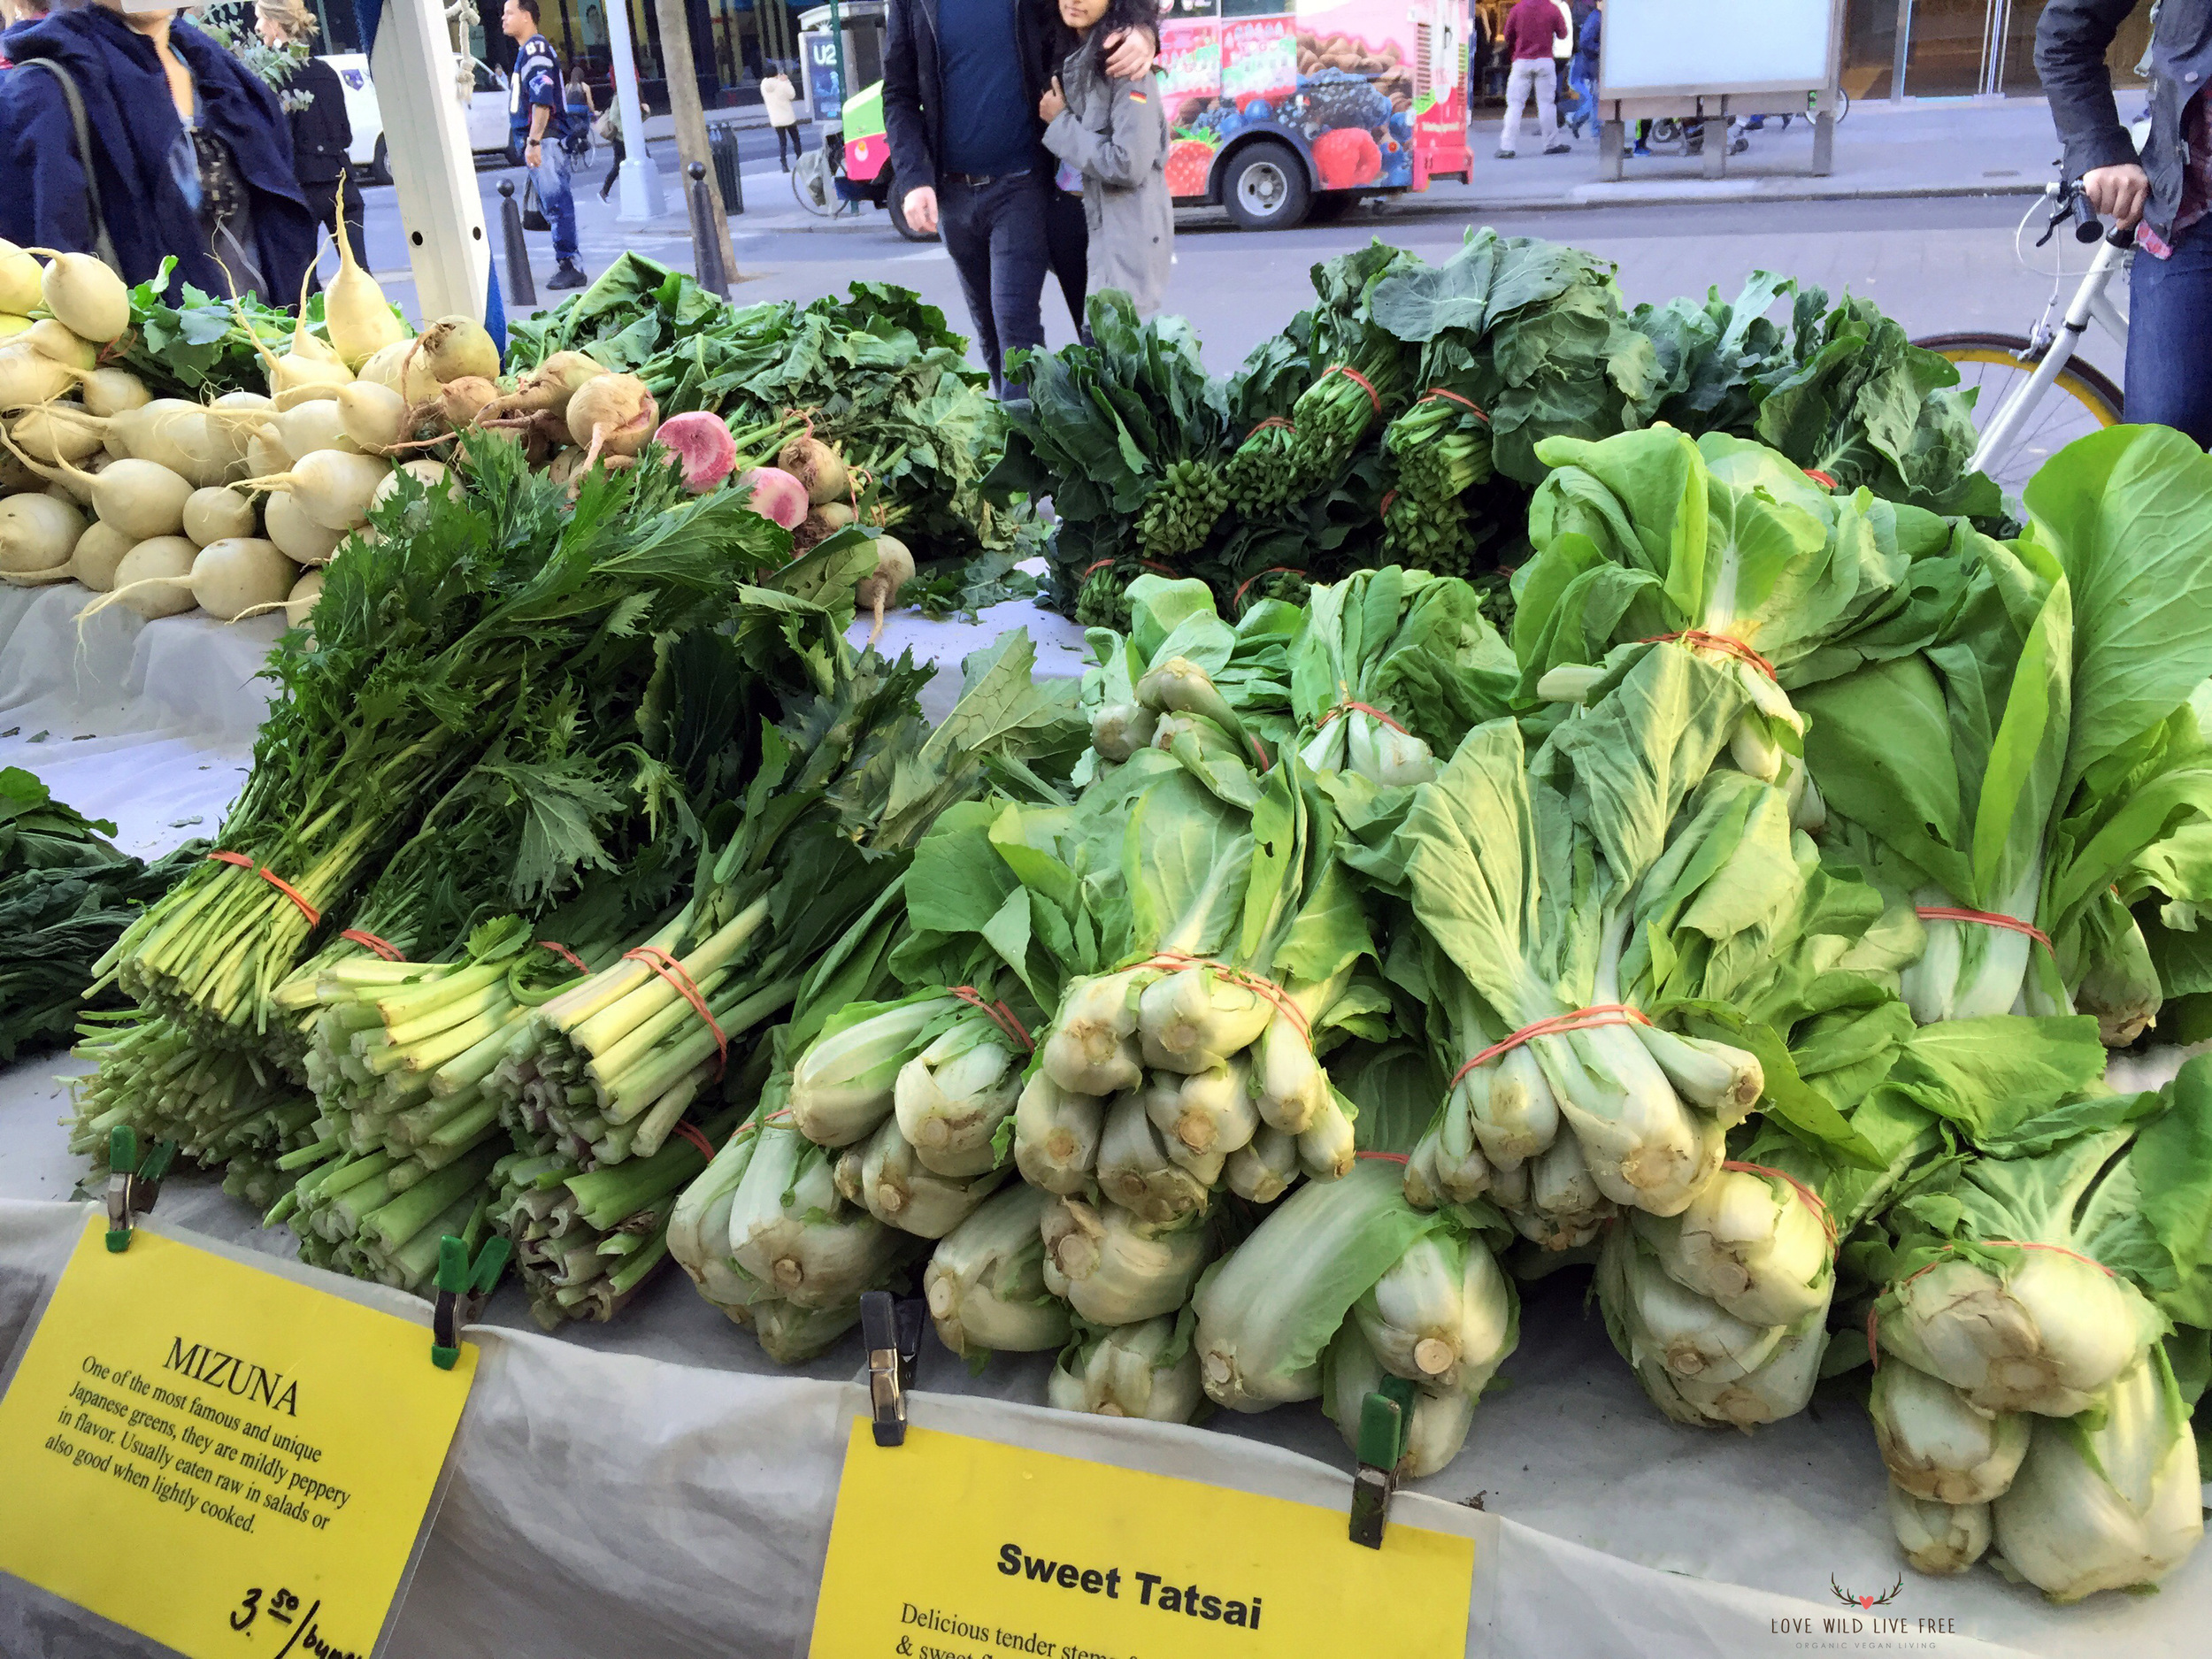 Fresh organic greens from Lani's Farm at GrowNYC's Greenmarket in Union Square. Photo by   Love Wild Live Free.